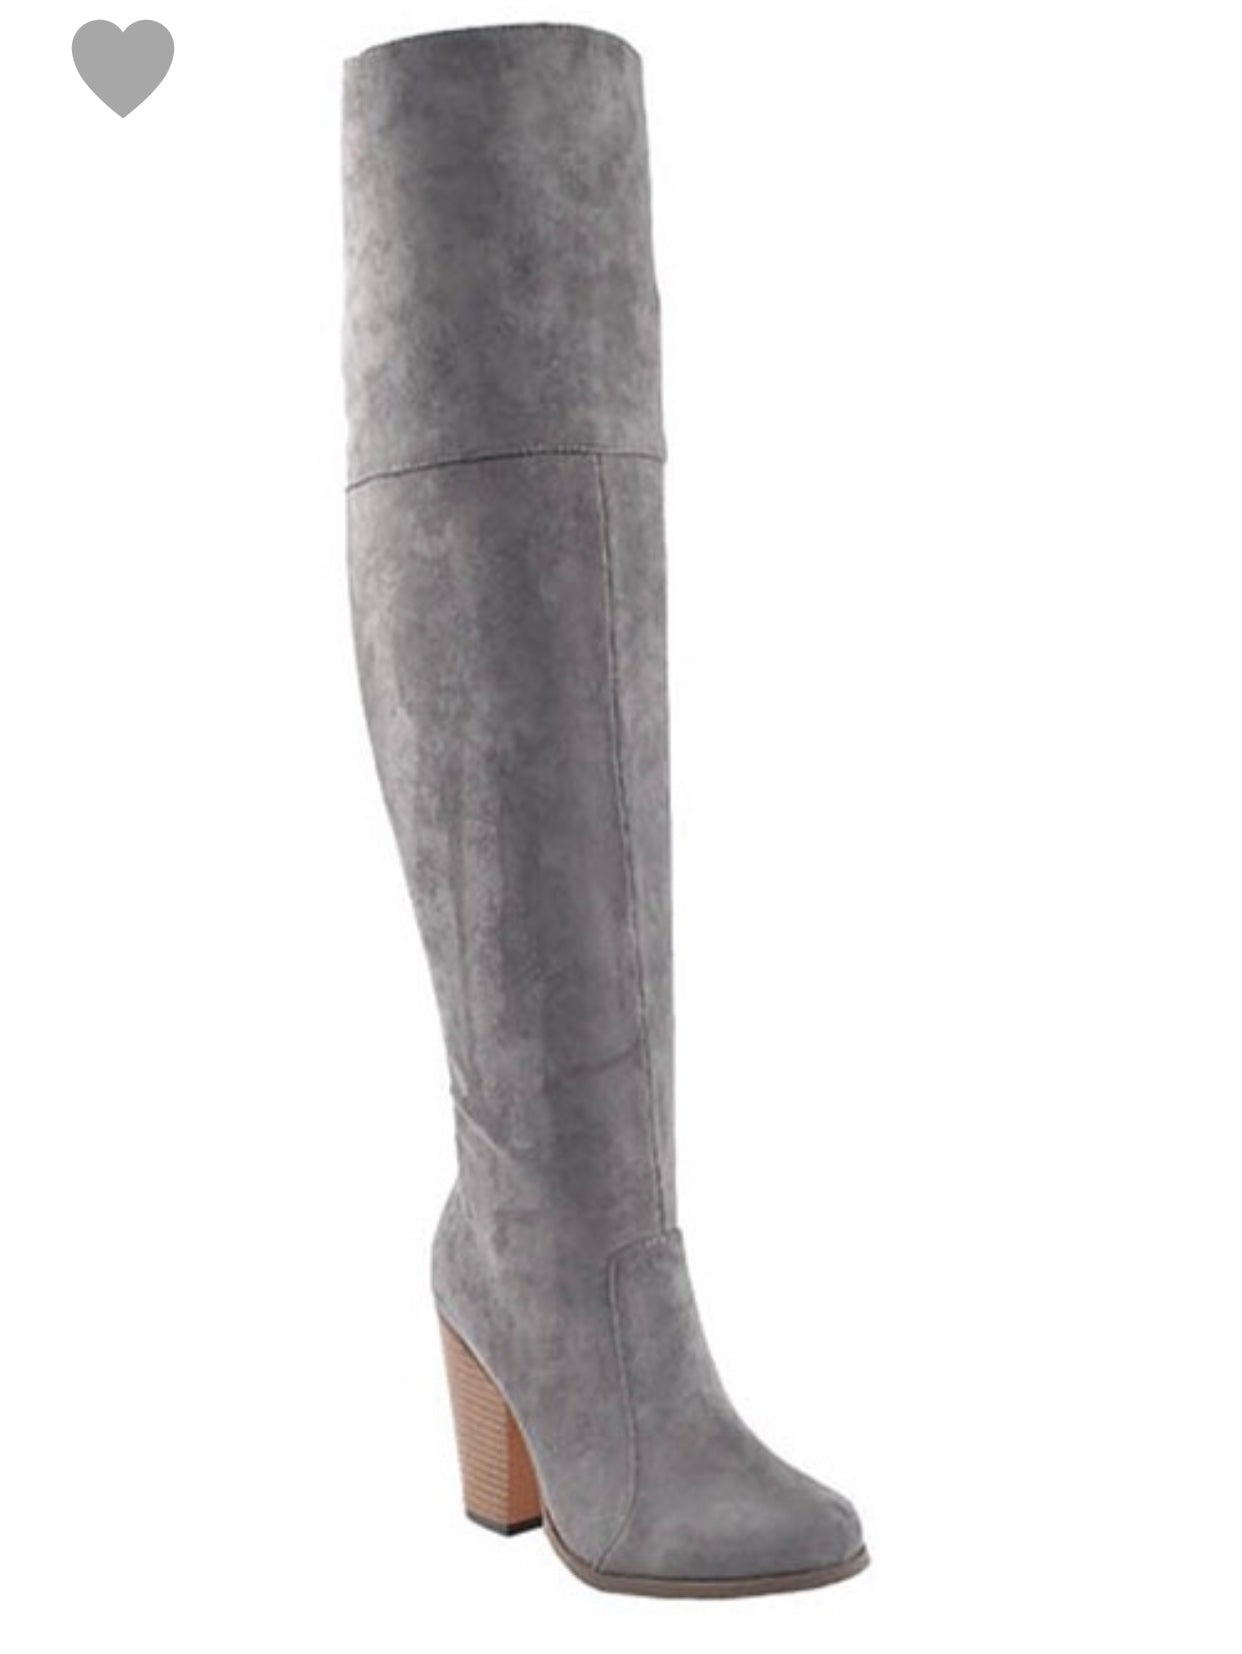 Chase + Chole Over The Knee Boot